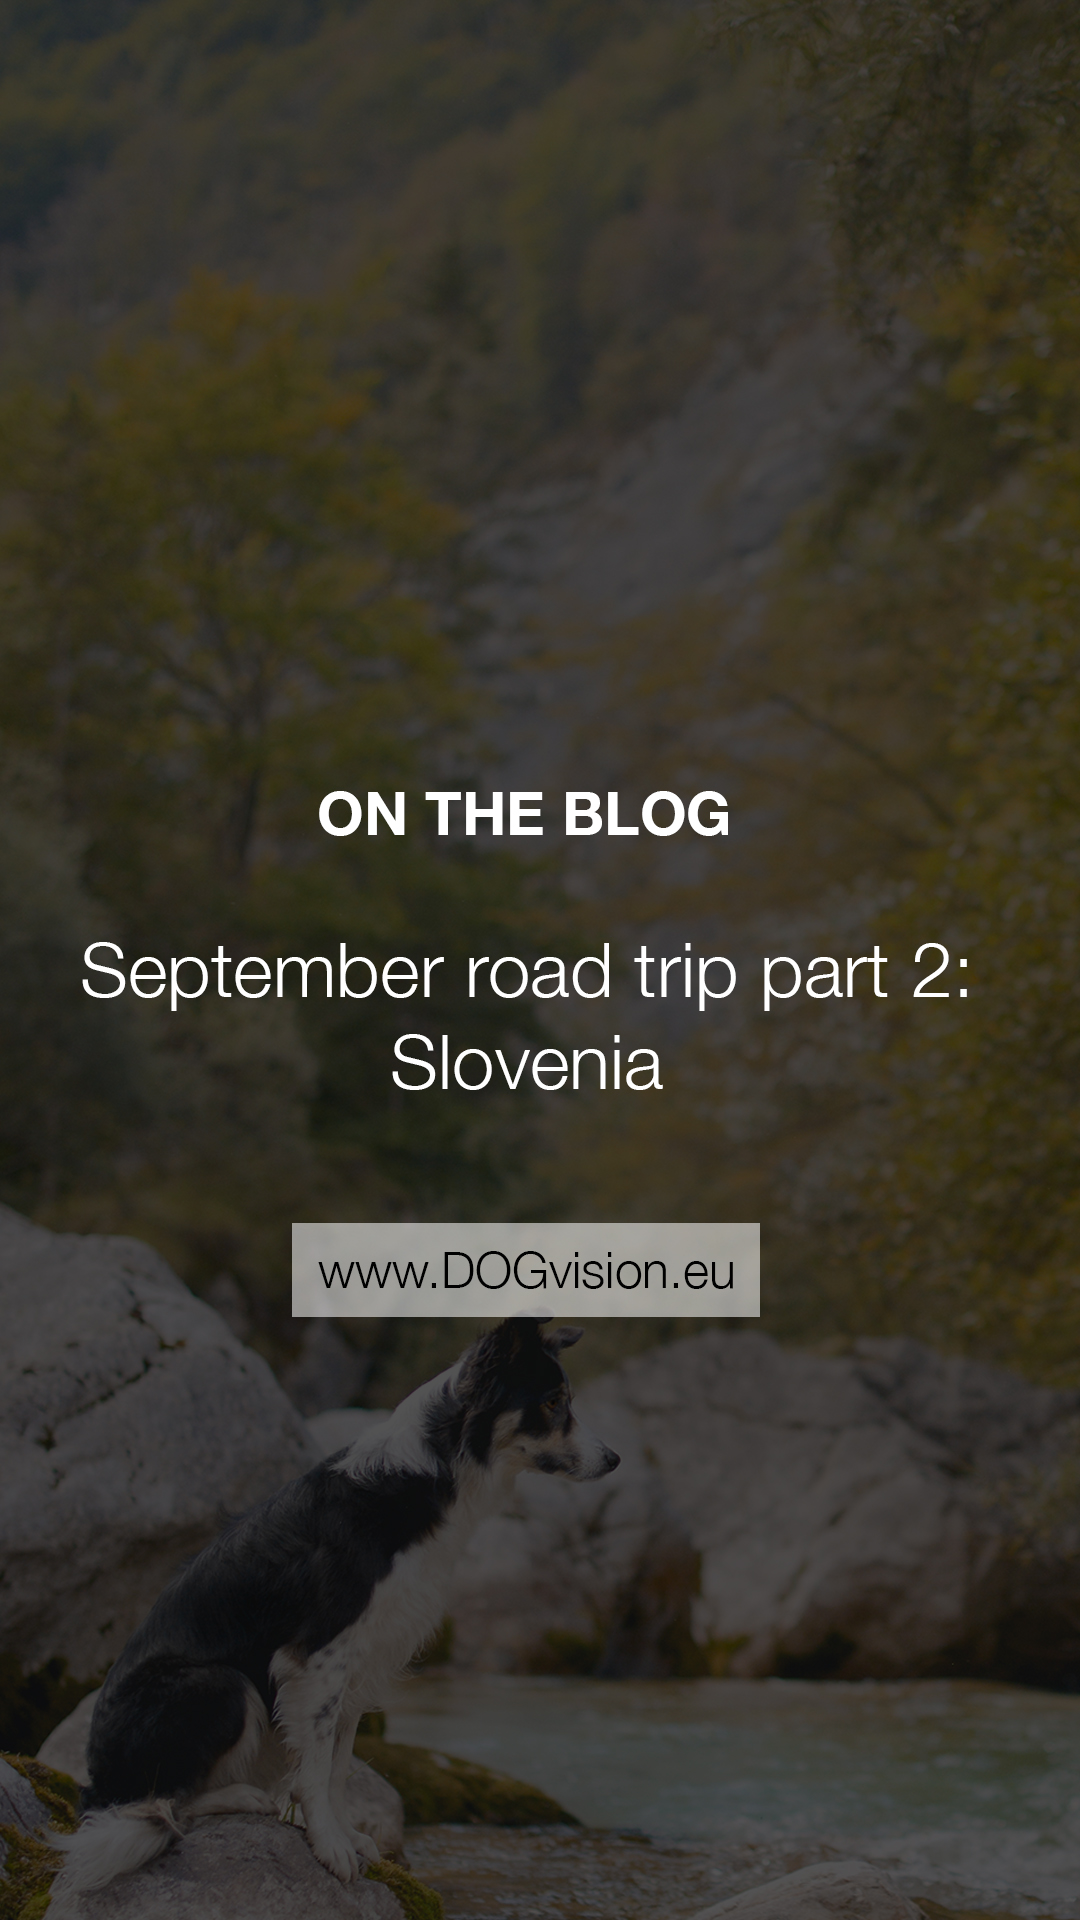 September road trip with dogs to Slovenia, dog photographer, traveling Europe with dogs, www.DOGvision.eu